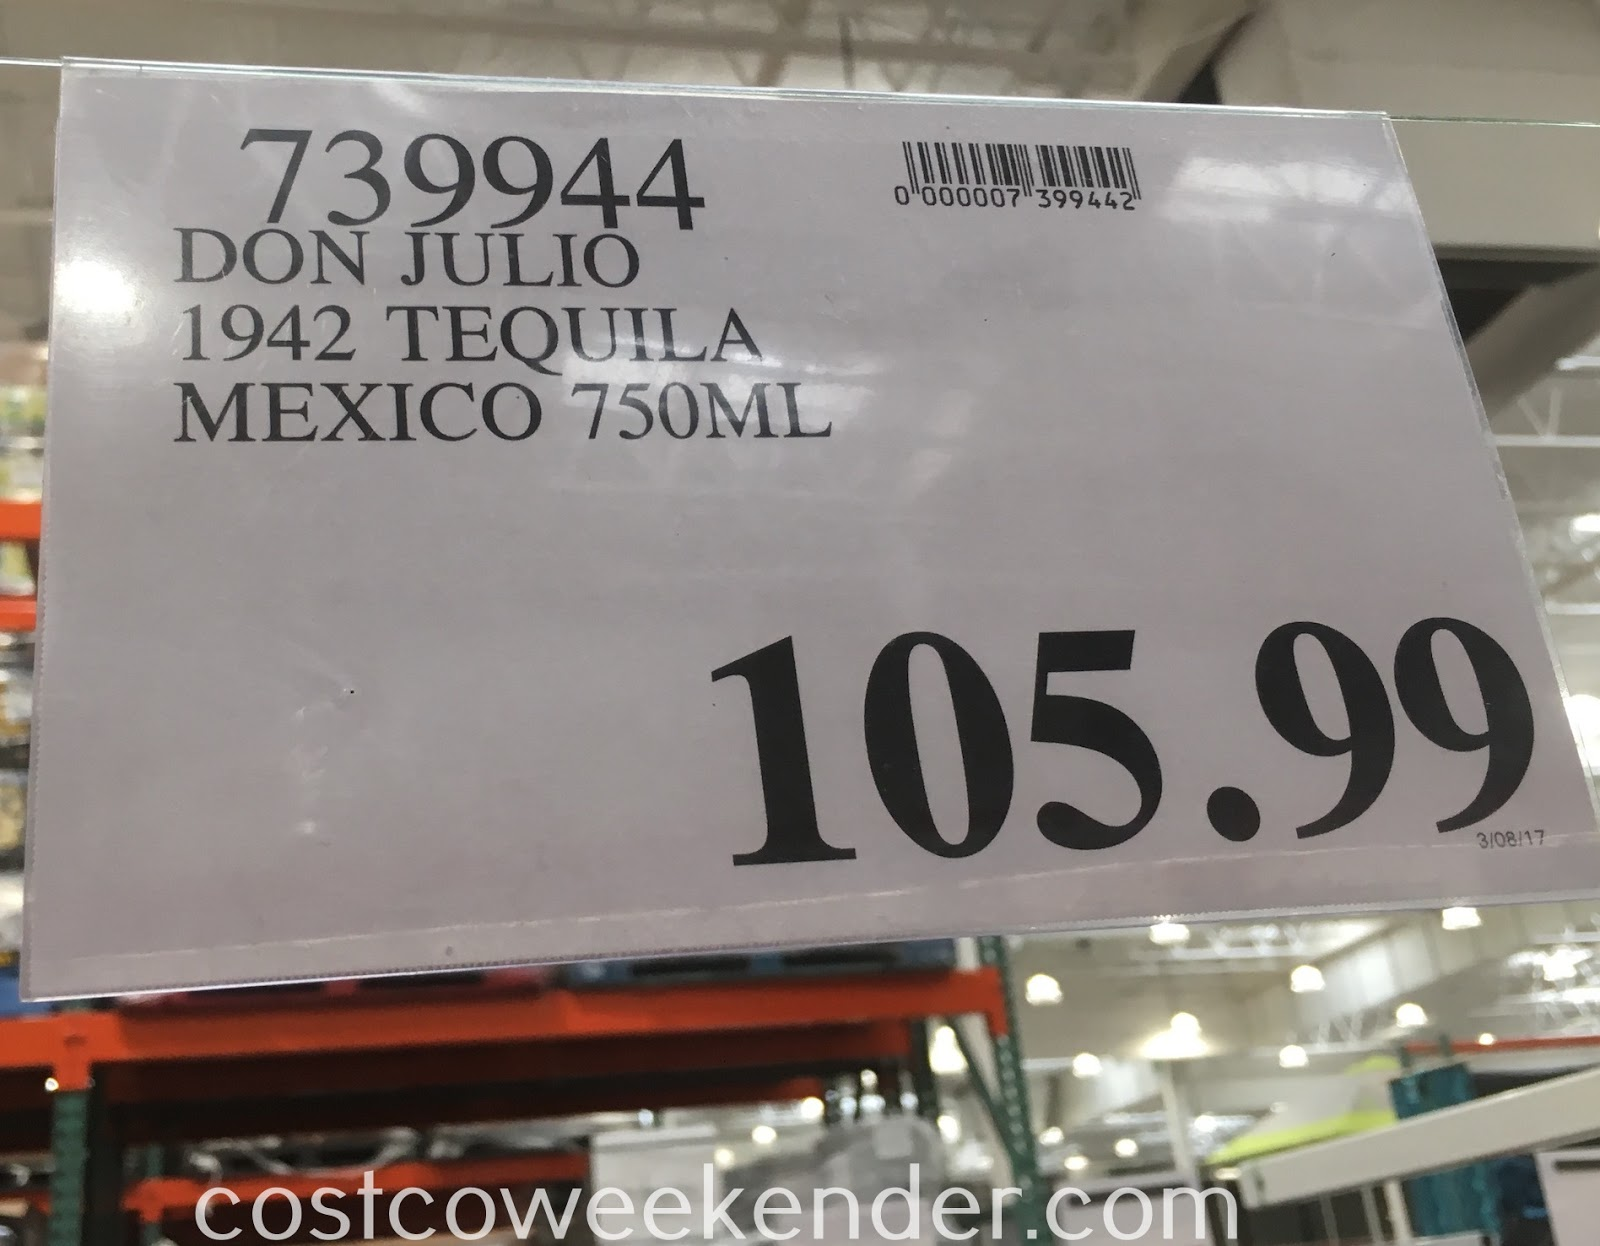 Deal for the Don Julio 1942 Tequila at Costco